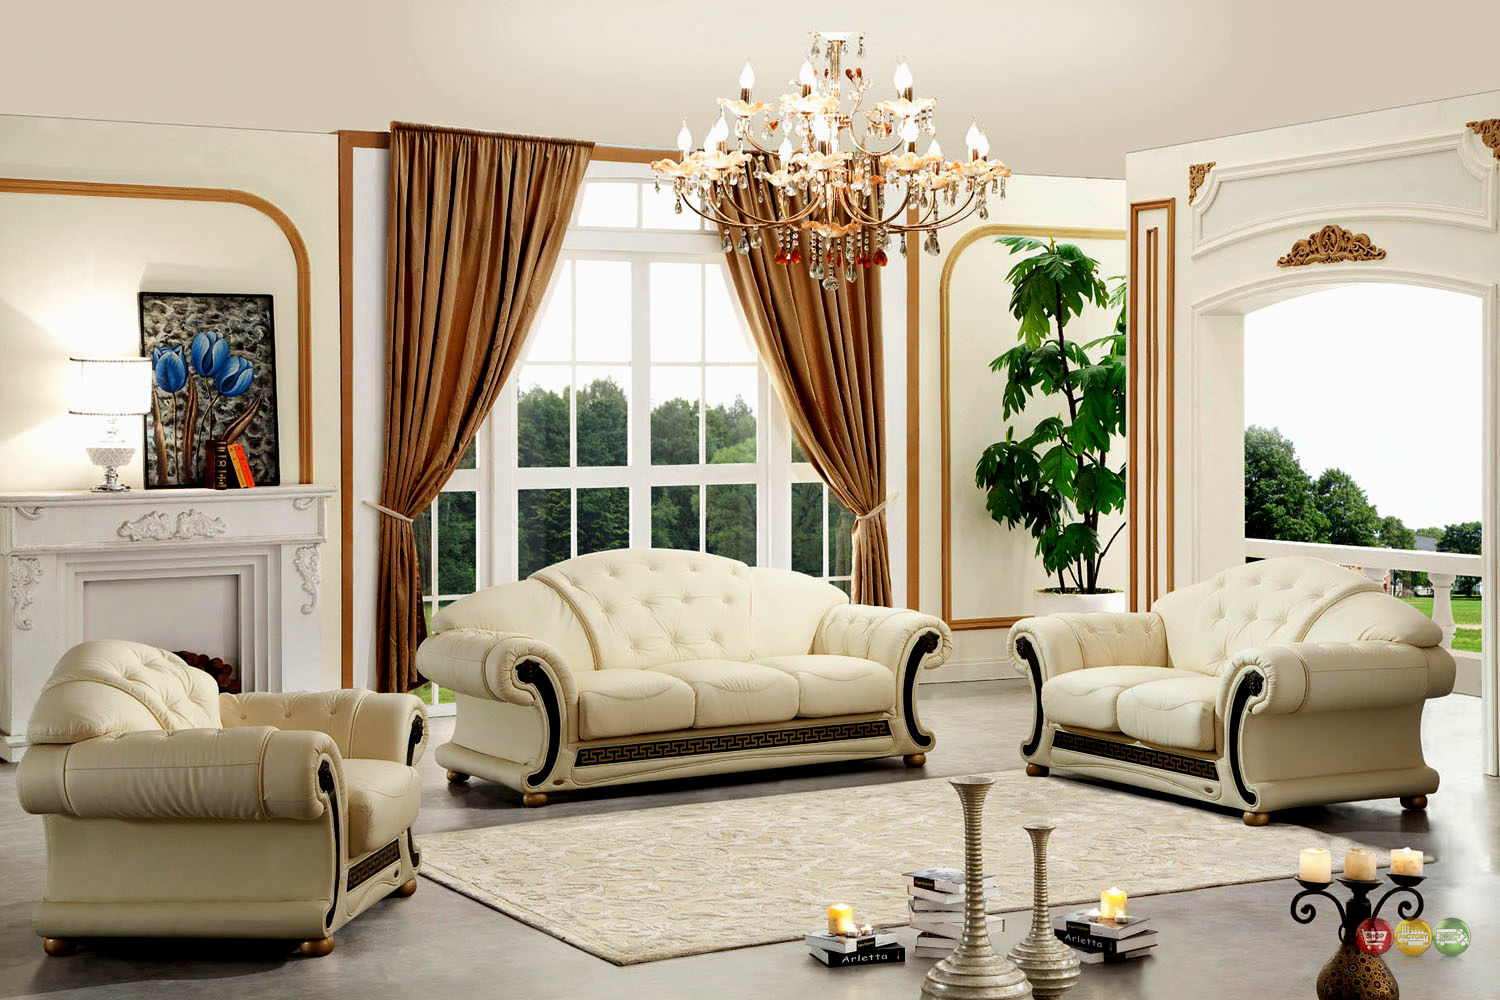 modern cream colored sofa wallpaper-Cool Cream Colored sofa Image